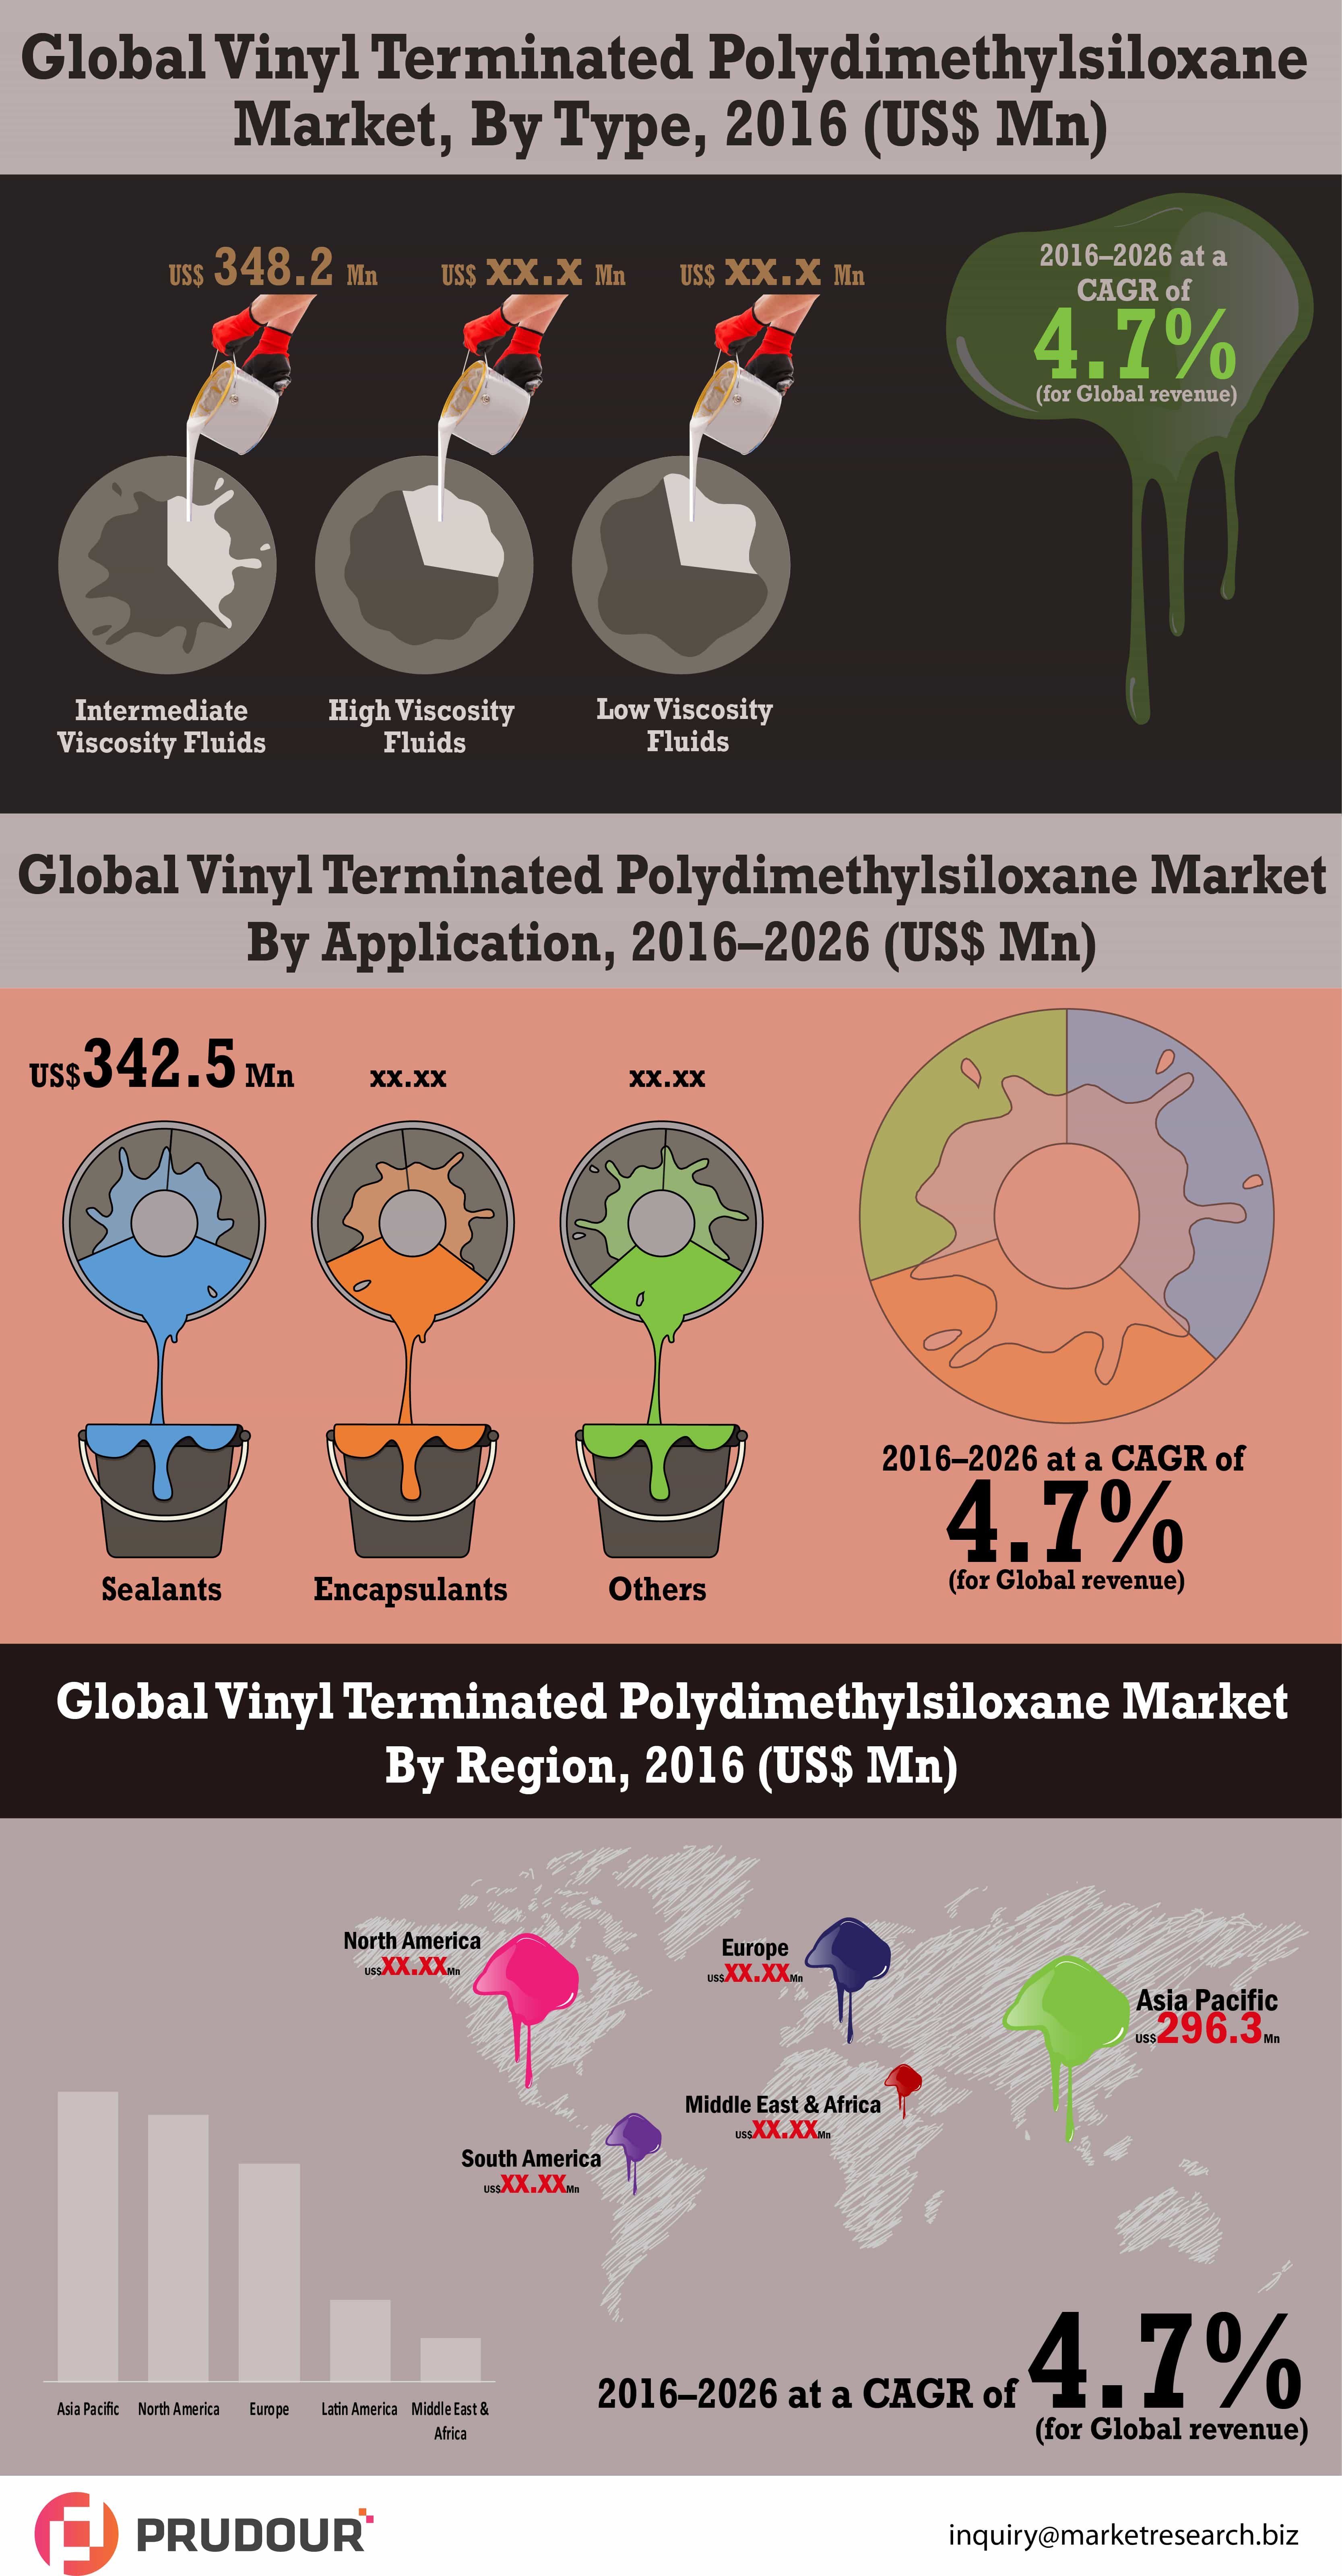 vinyl terminated polydimethylsiloxane market